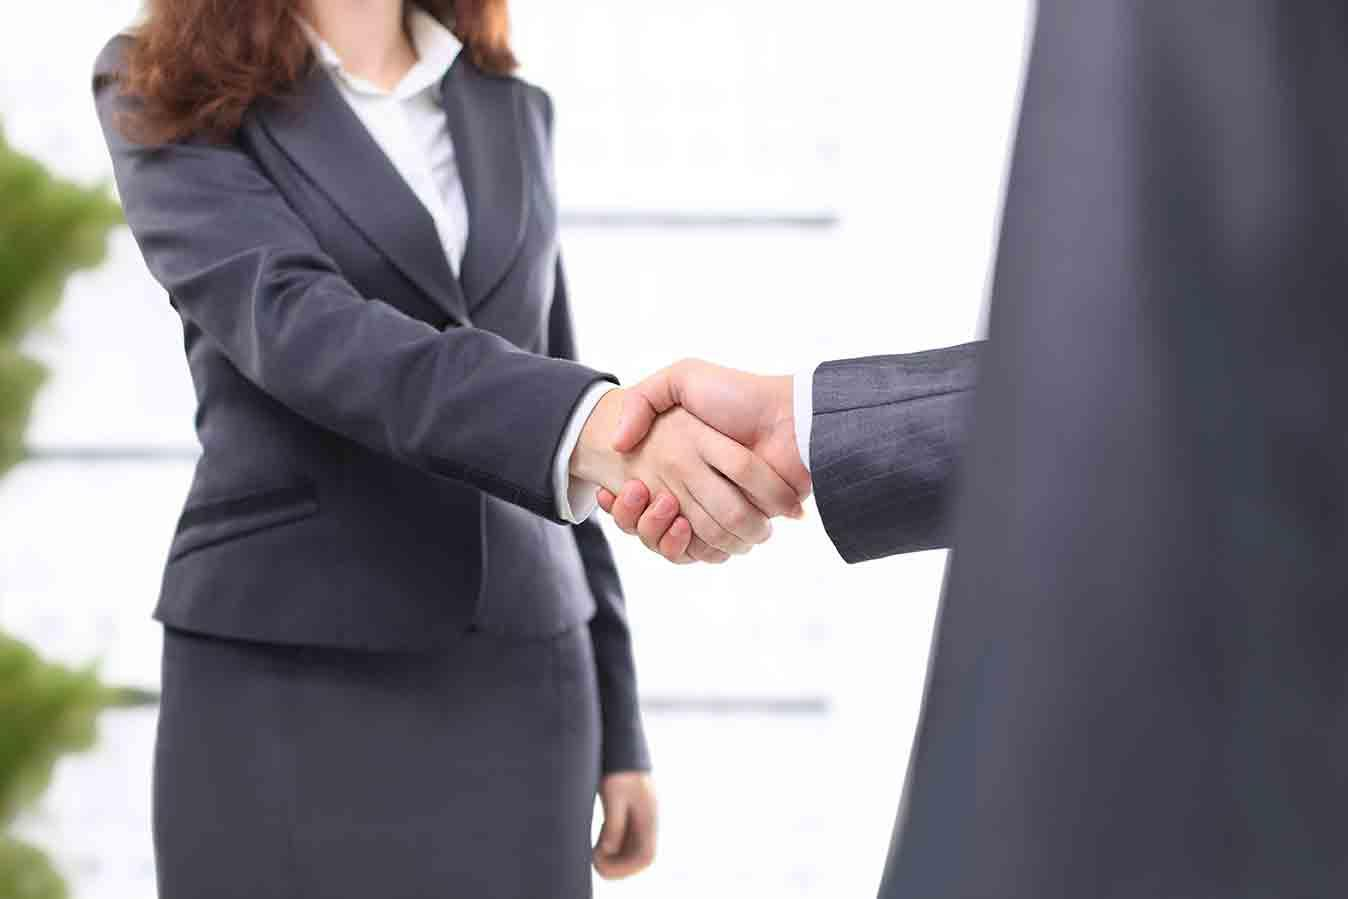 Management handshake